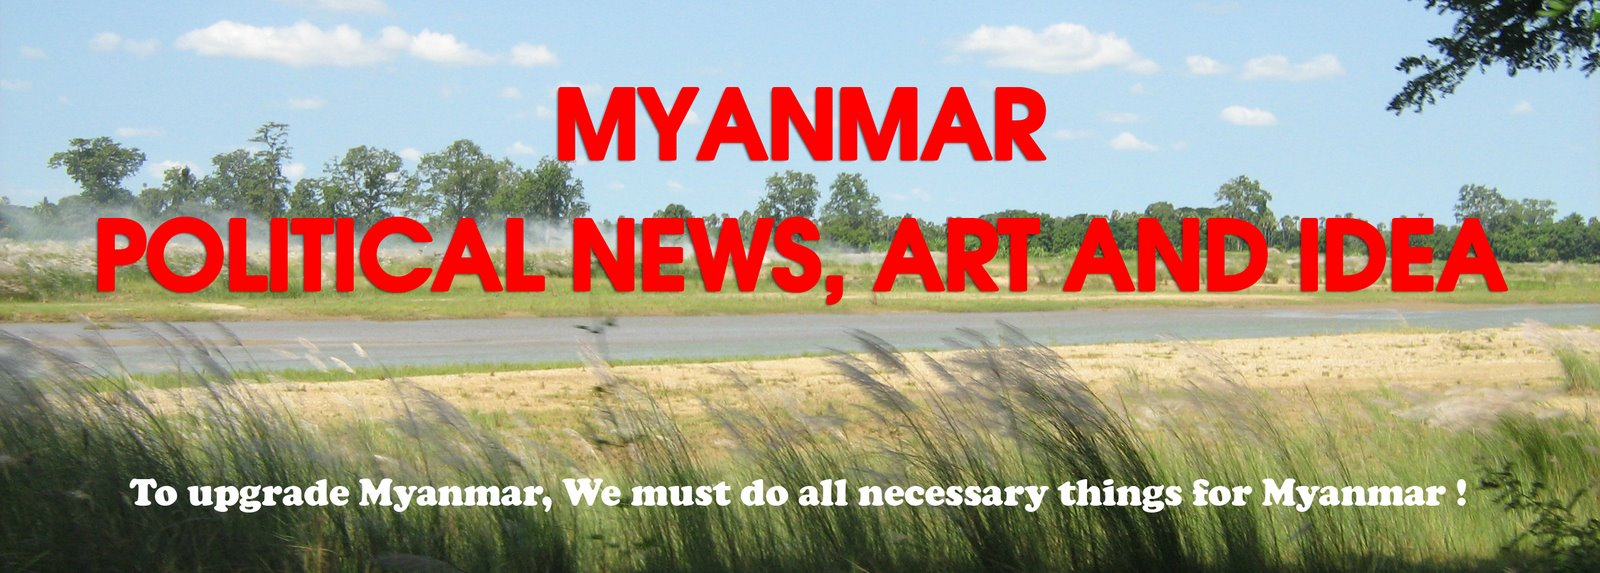 MYANMAR POLITICAL NEWS, ART AND IDEA